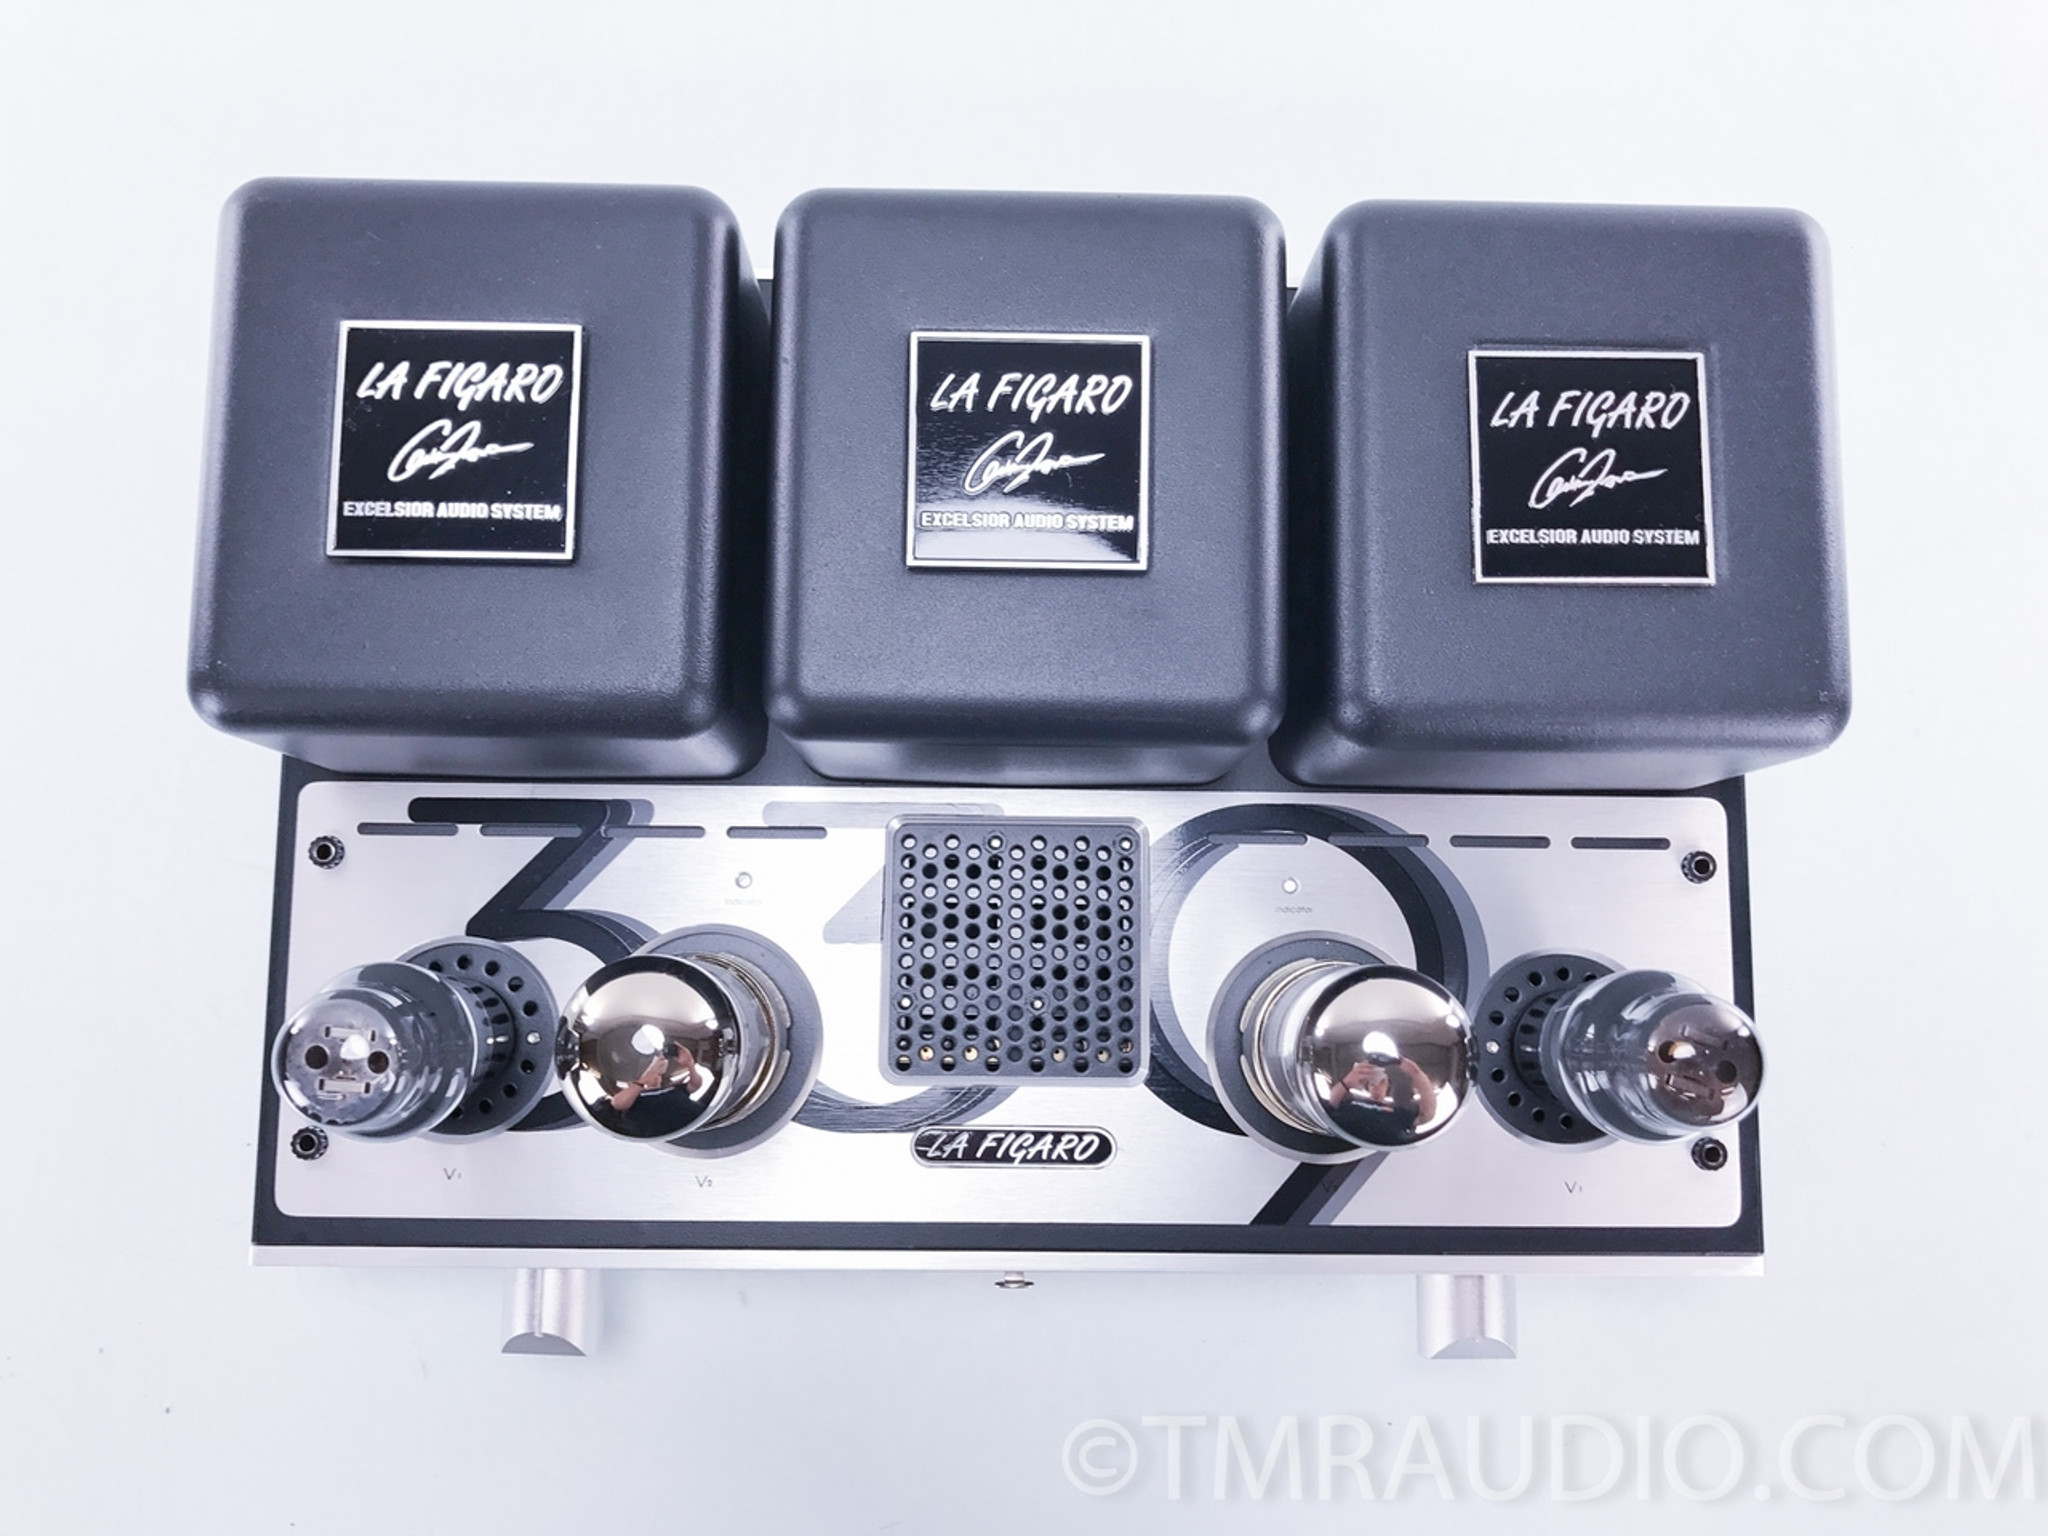 La Figaro 339 Dual Mono Tube Headphone Amplifier The Music Room Power Otl For Cassette Radio Booster It Have Transistor